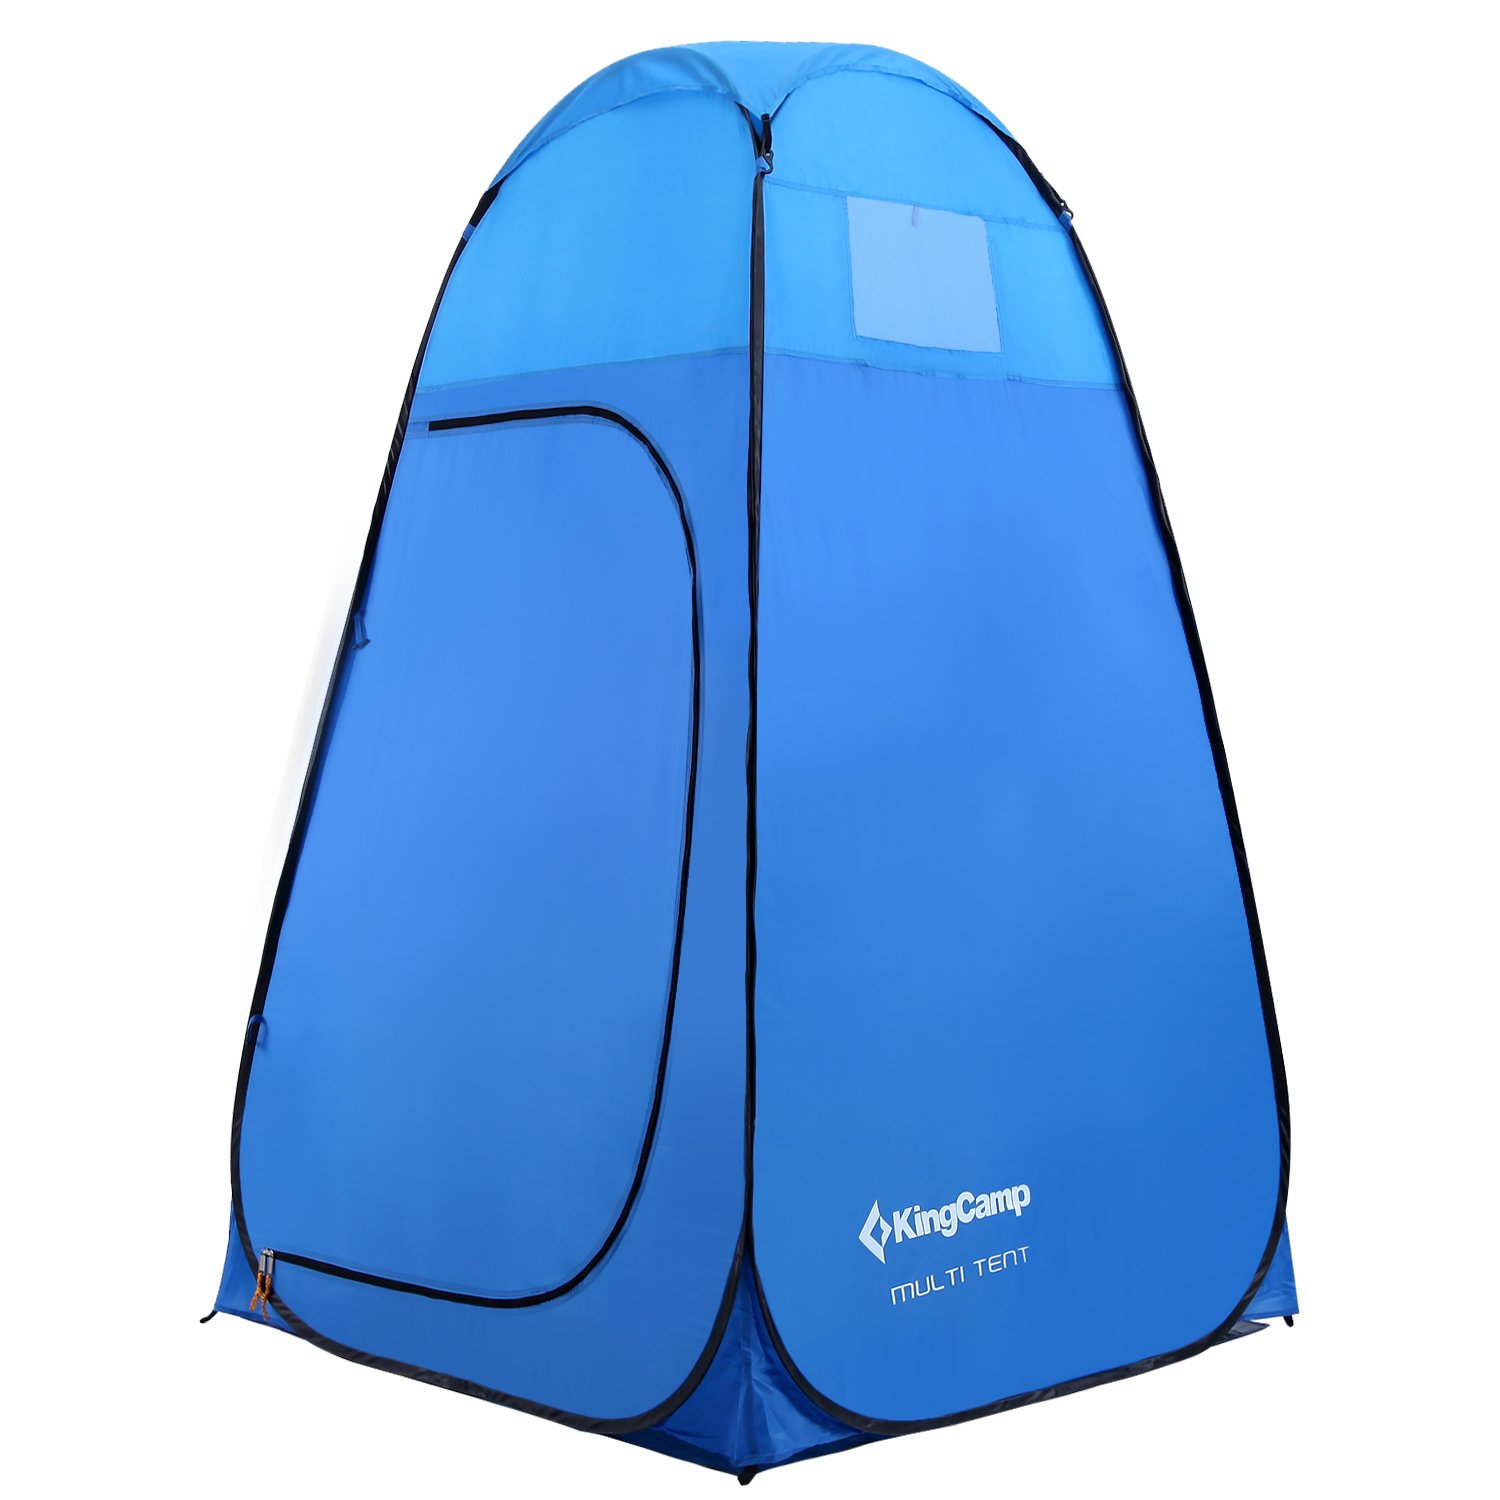 KingCamp Outdoor Portable Pop up Multipurpose Tent for Camping, Beach, Toilet, Changing Room